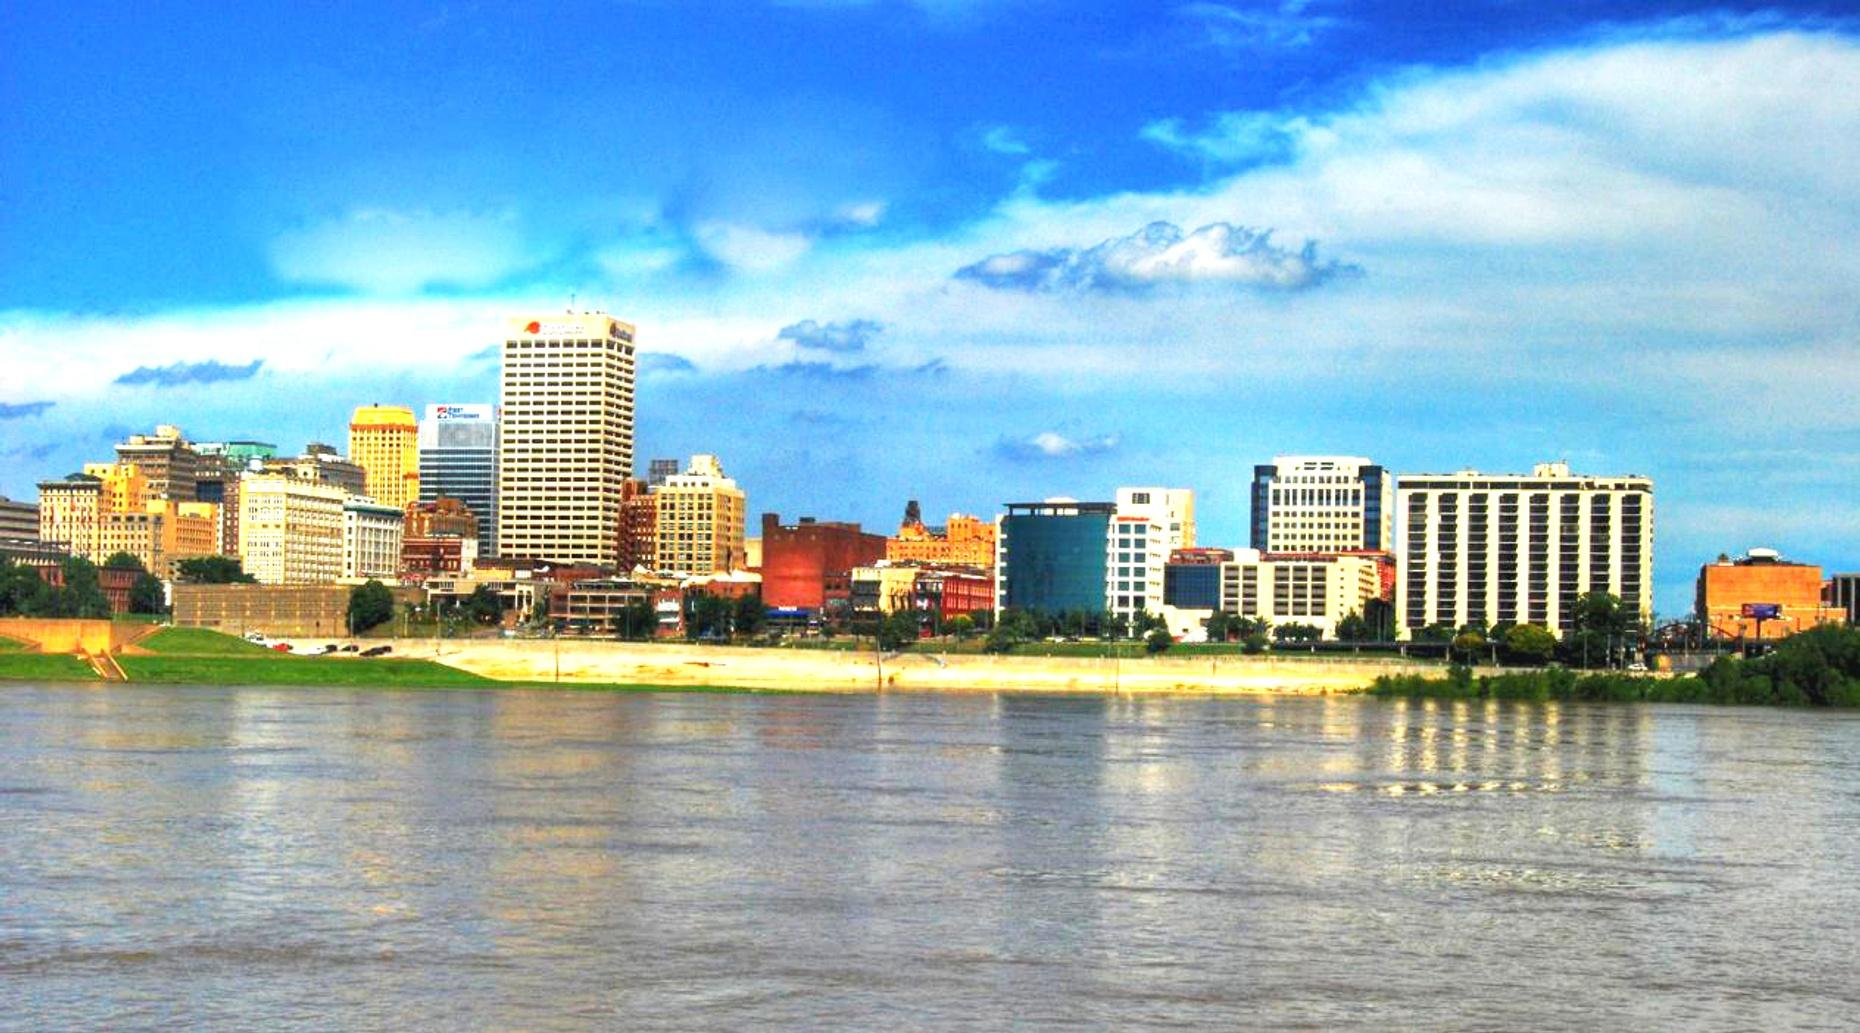 Guided History Tour of Memphis